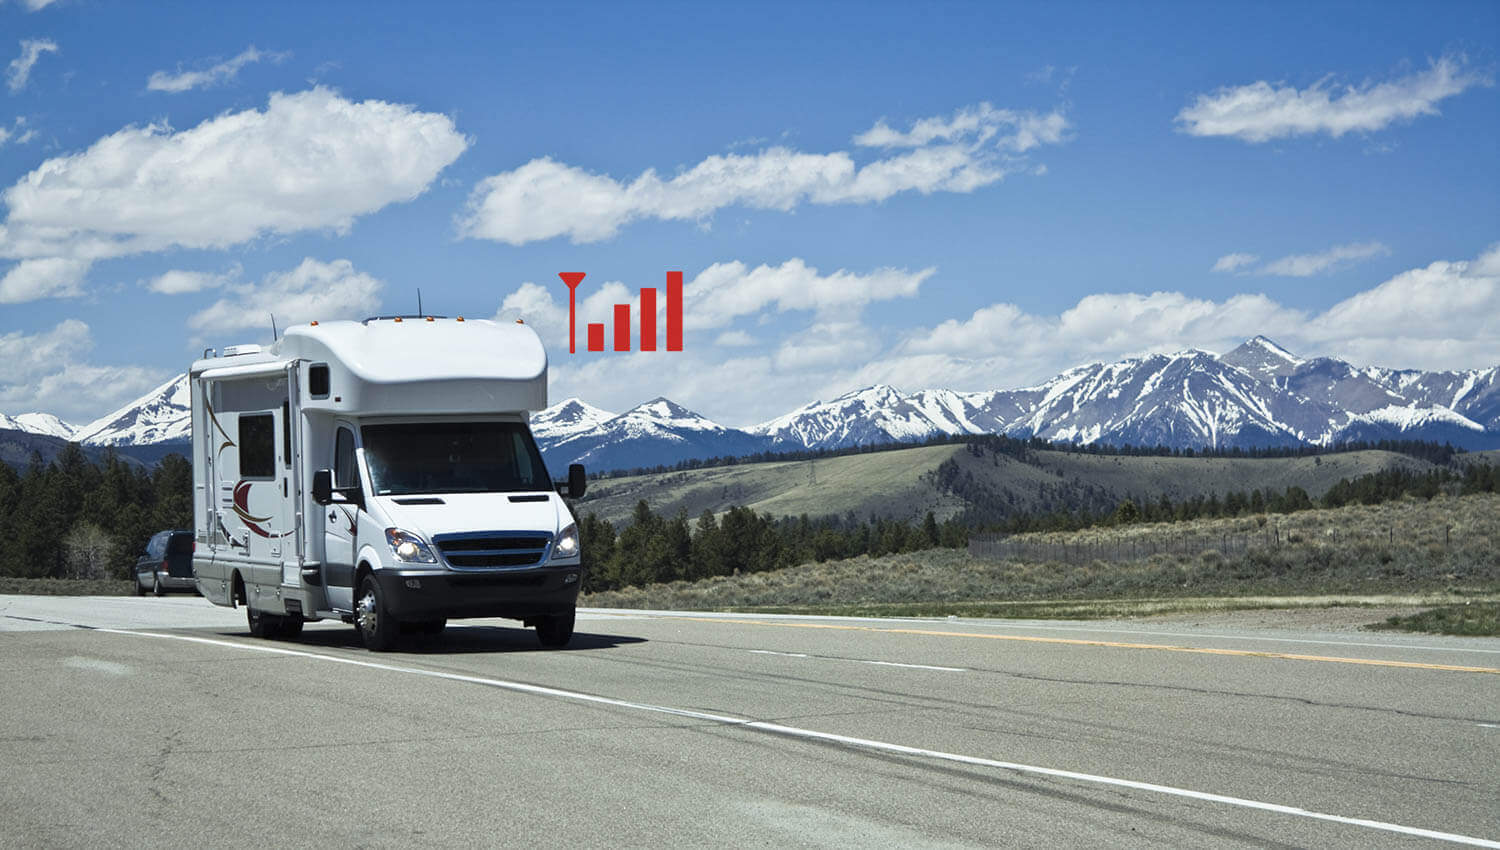 HiBoost Cell phone signal booster for RV-On the road